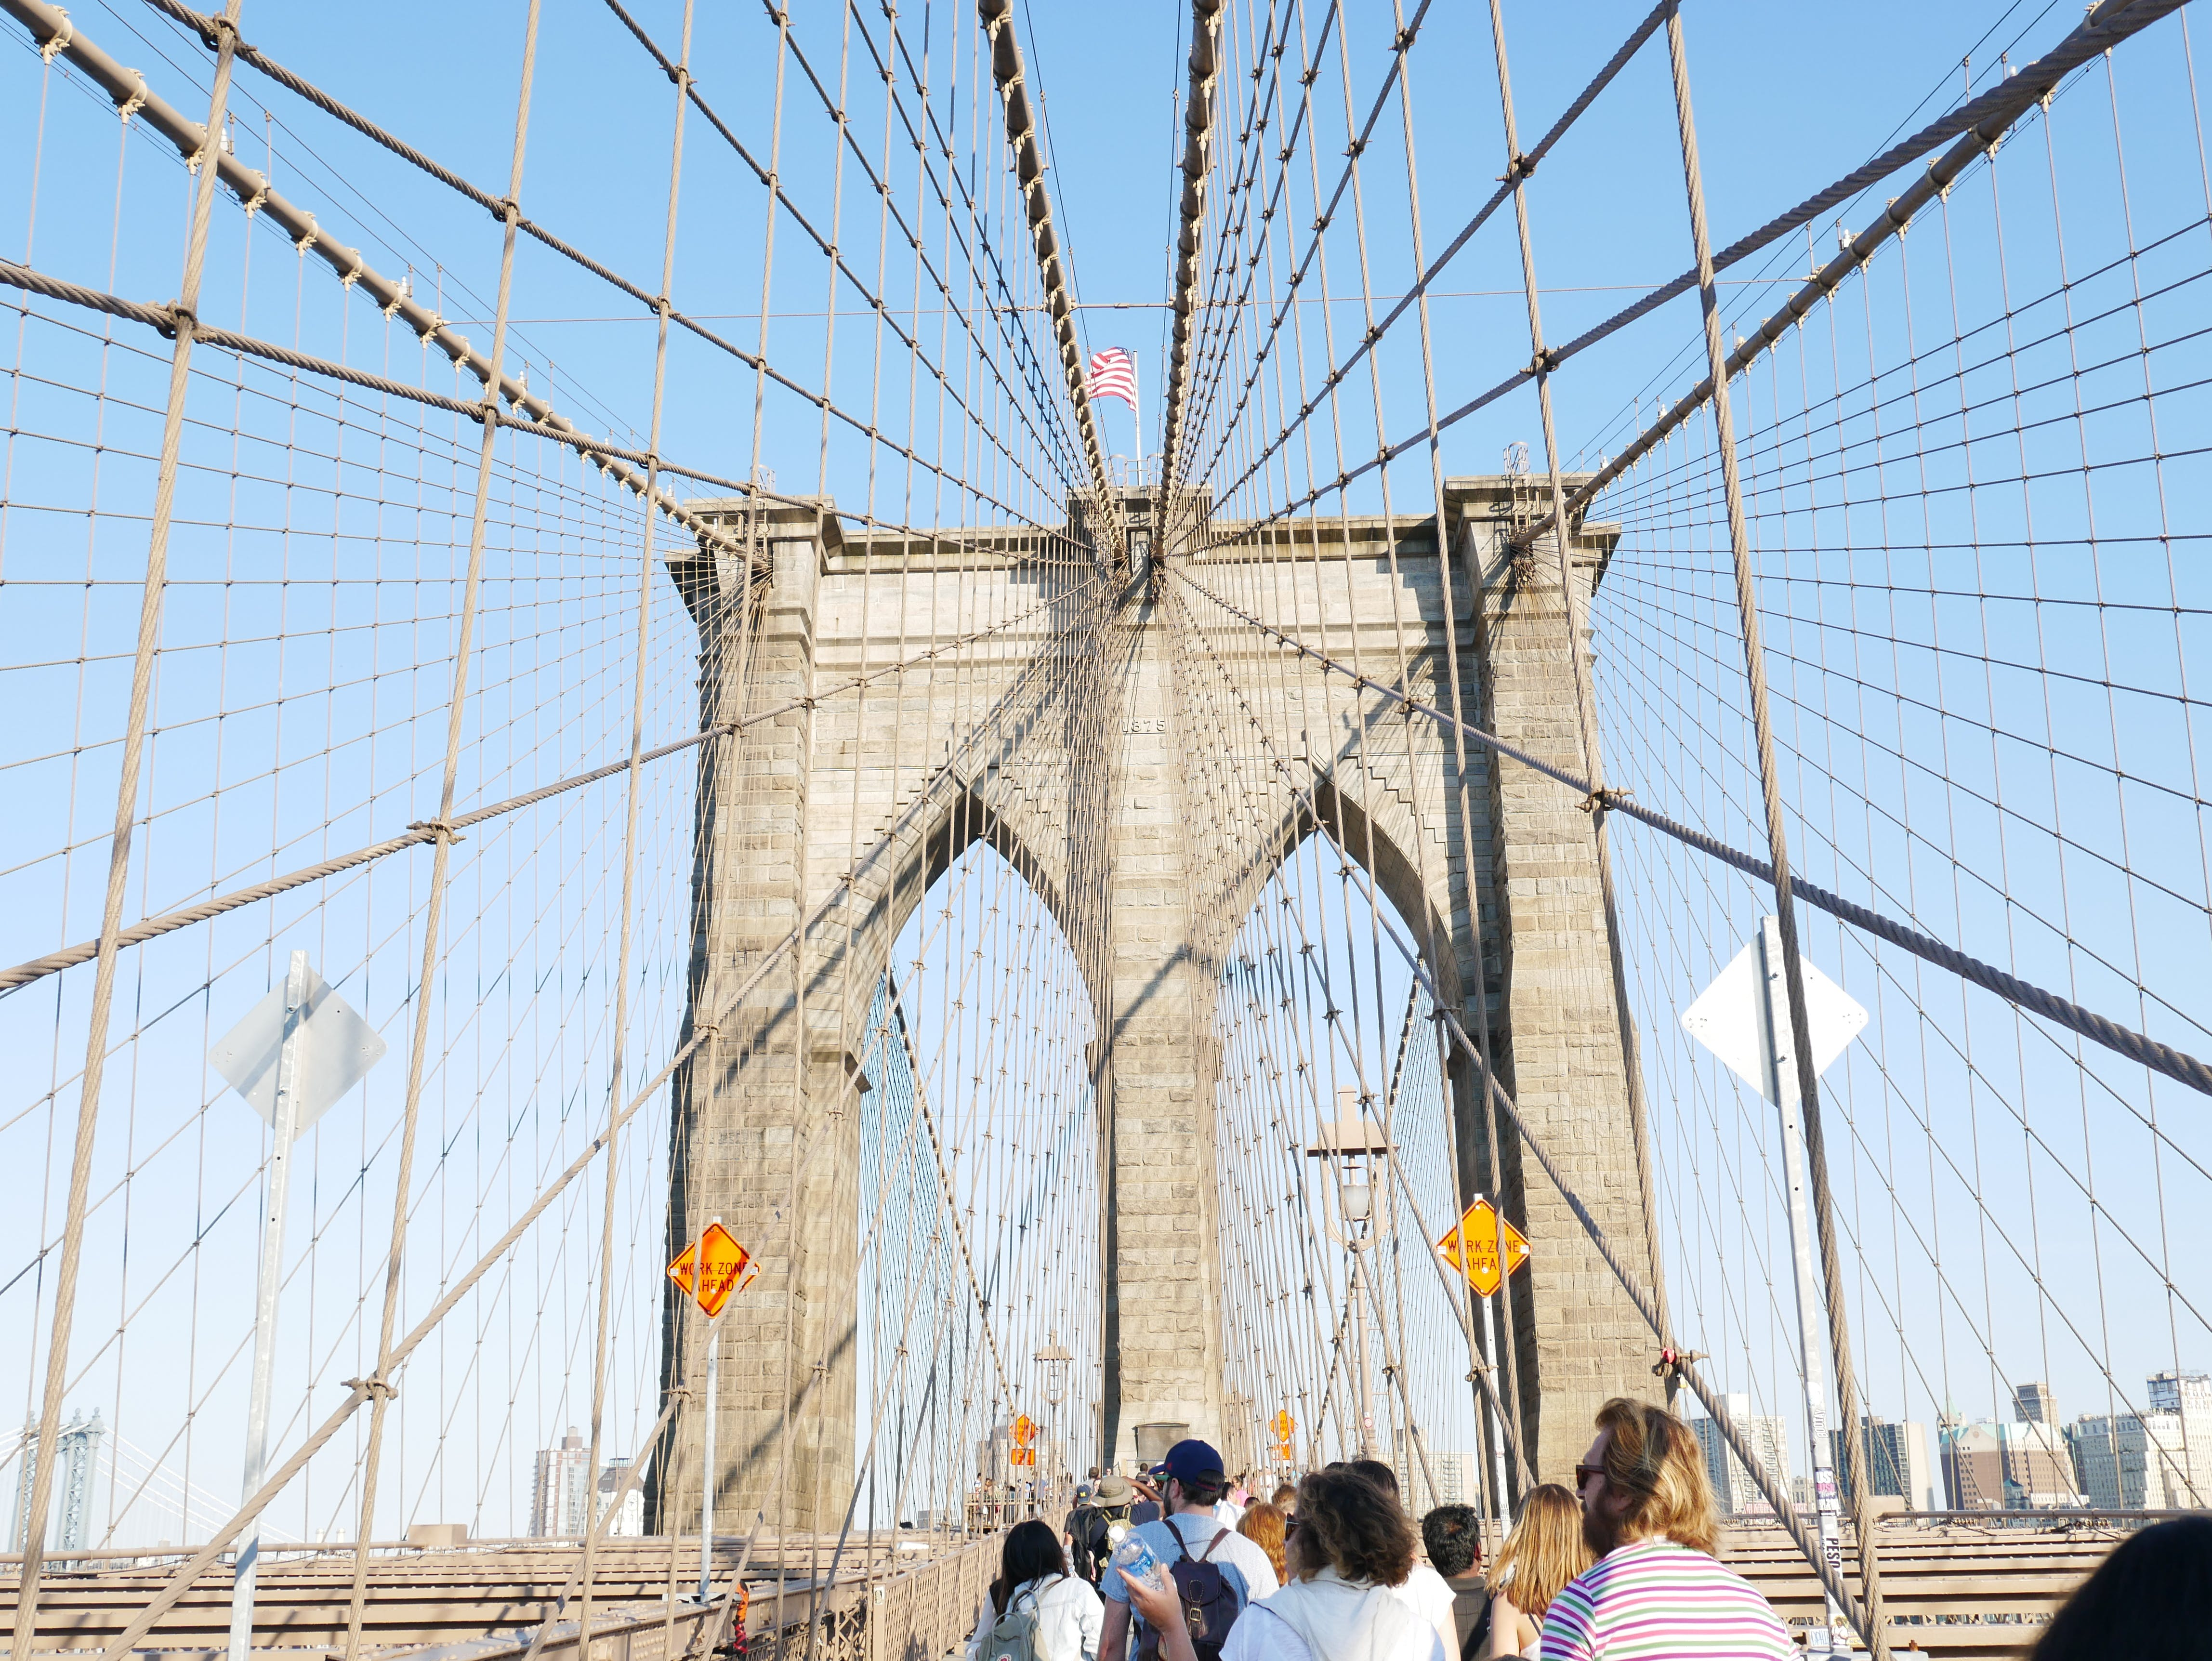 Brooklyn Bridge, U.s.a.